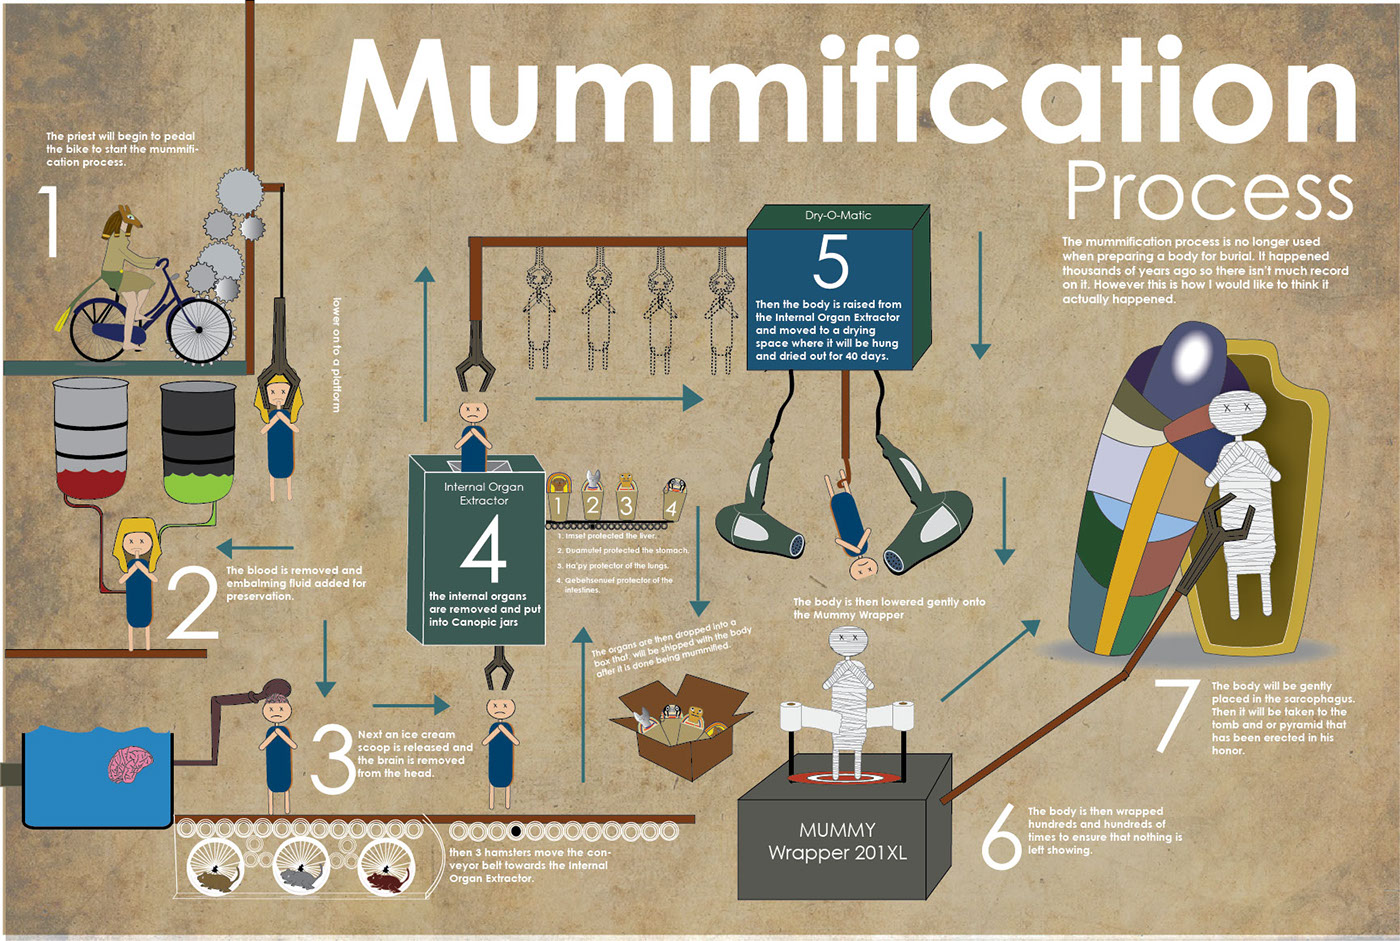 Mummification Process On Behance